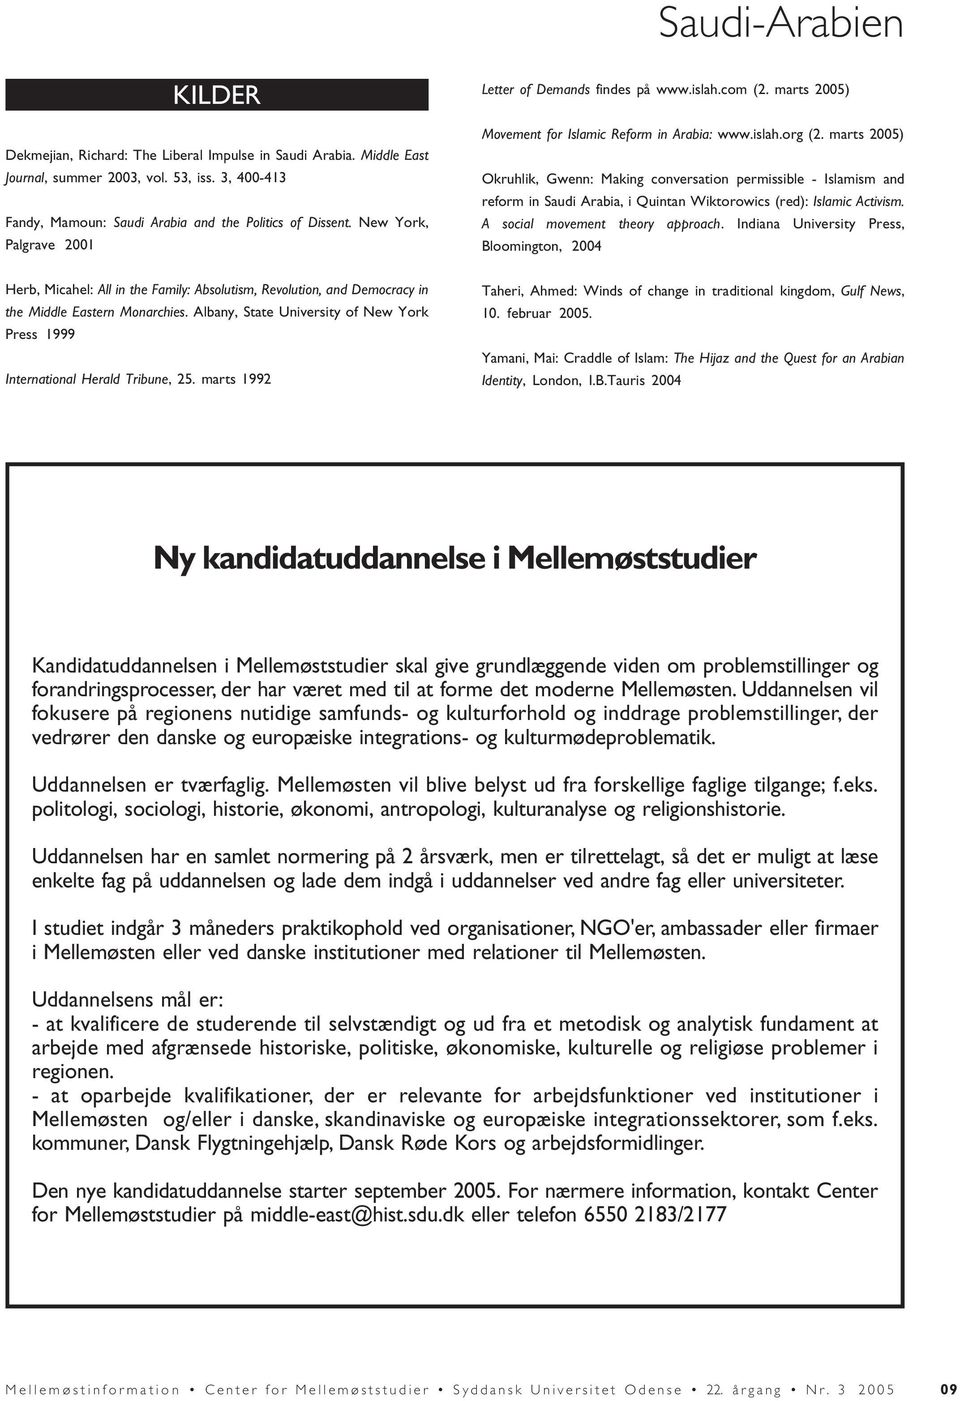 marts 2005) Okruhlik, Gwenn: Making conversation permissible - Islamism and reform in Saudi Arabia, i Quintan Wiktorowics (red): Islamic Activism. A social movement theory approach.